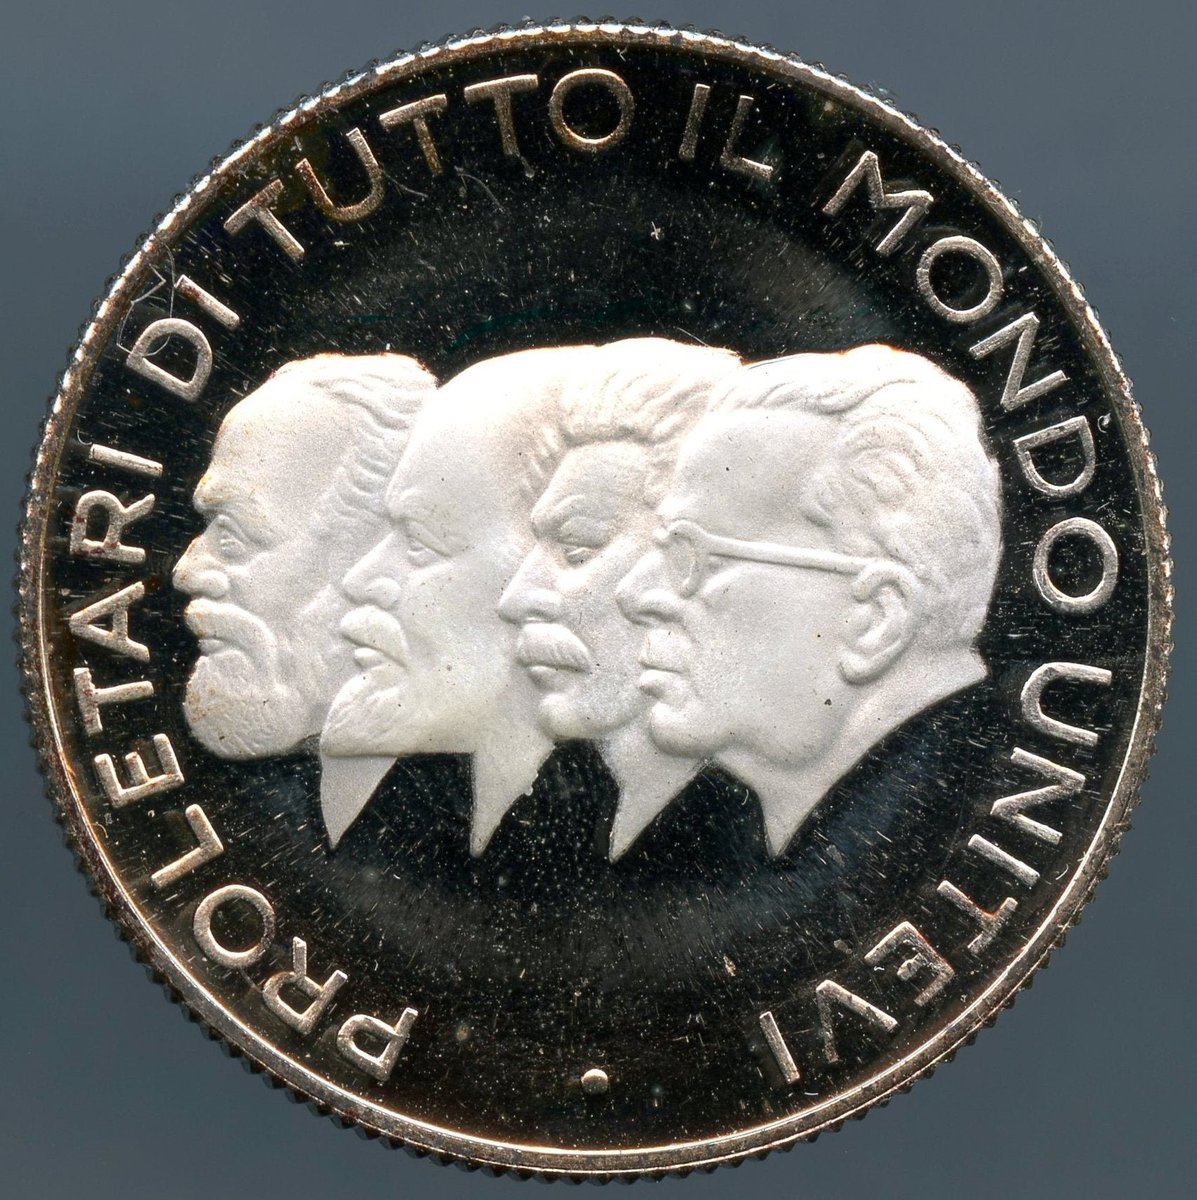 Excited to share the latest addition to my #etsy shop: Communist leaders Medal, Proletari di Tutto il Mondo Unitevi https://etsy.me/2InLCPu #vintage #collectibles #silver #communistleaders #medal #proletari #di #tuttoil #mondounitevi